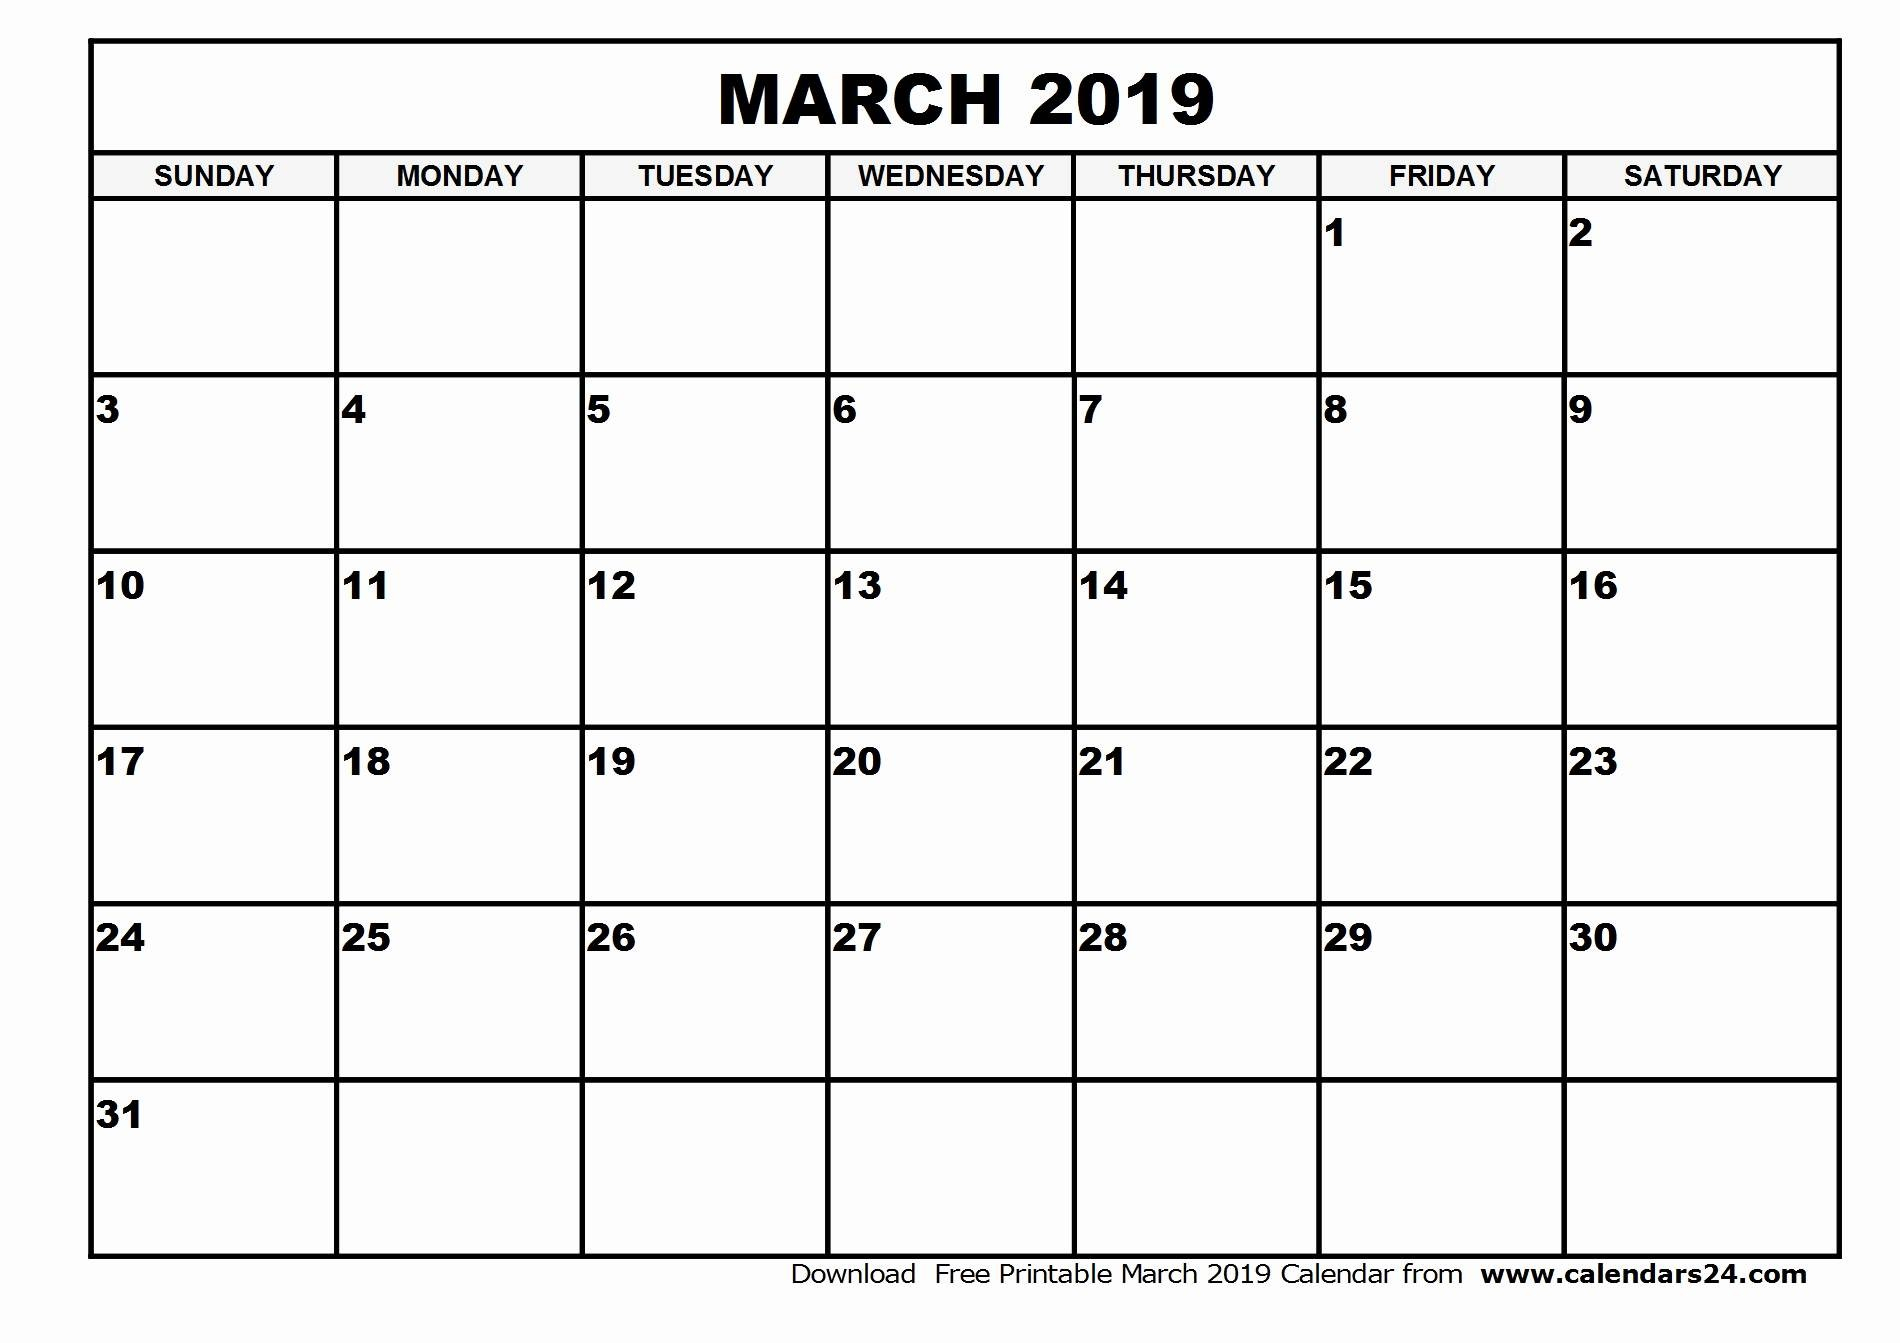 Blank March 2019 Calendar Templates Printable Download - July 2019 in Free Editable Monthly Calendar Template